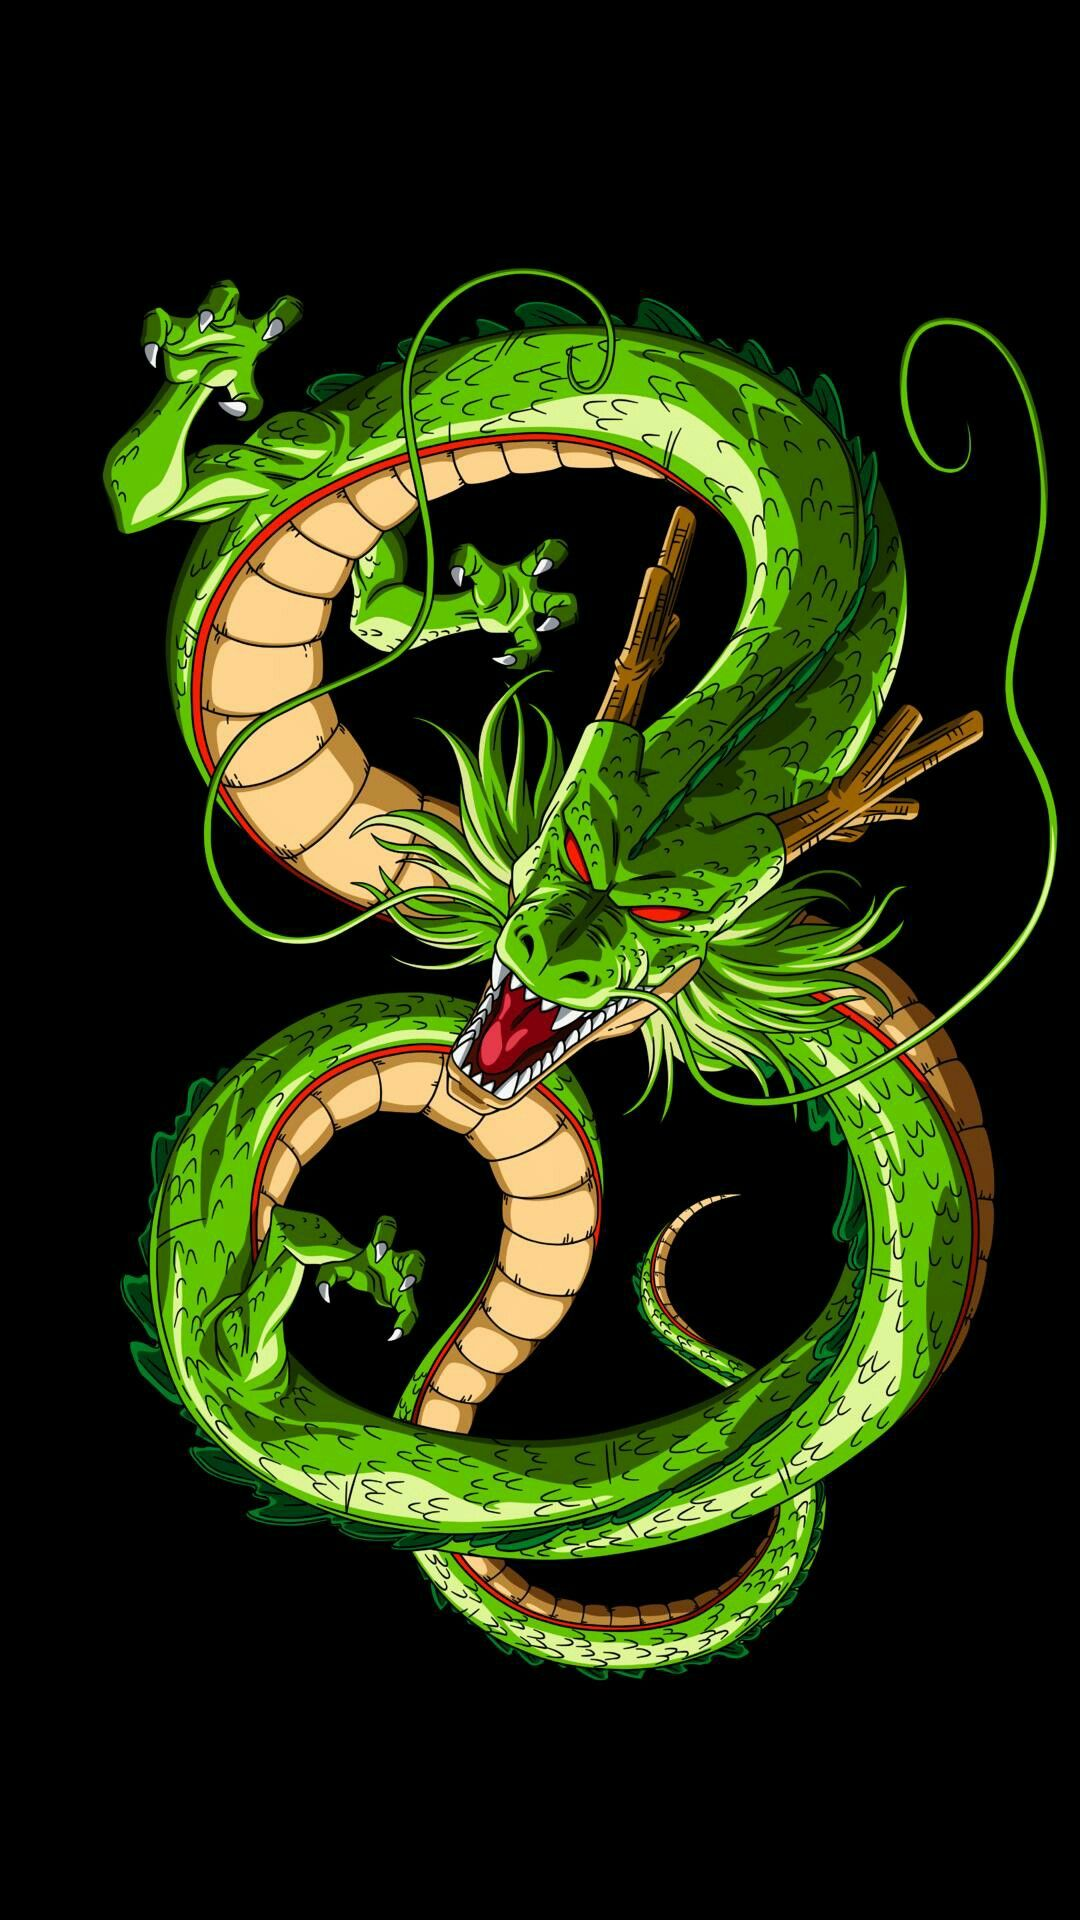 Pin by RJ Alsides on Zedge Wallpapers Dragon ball